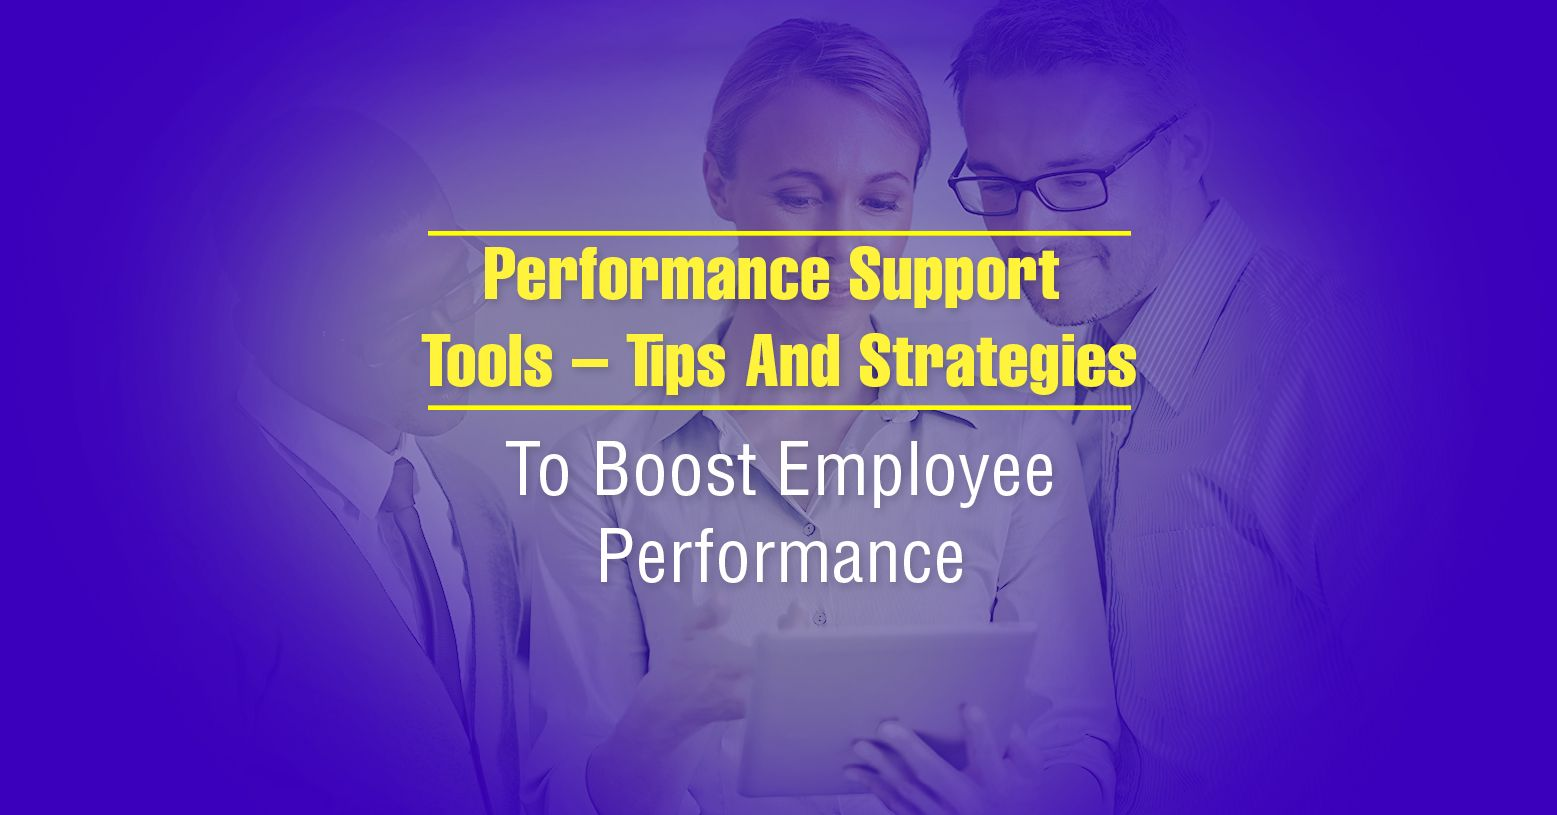 Well, plenty! We offer a variety of Performance Support solutions to push knowledge application on the job.  #PerformanceSupportTool #LearningandPerformance #PerformanceTool #SupportTool #Learning #Performance